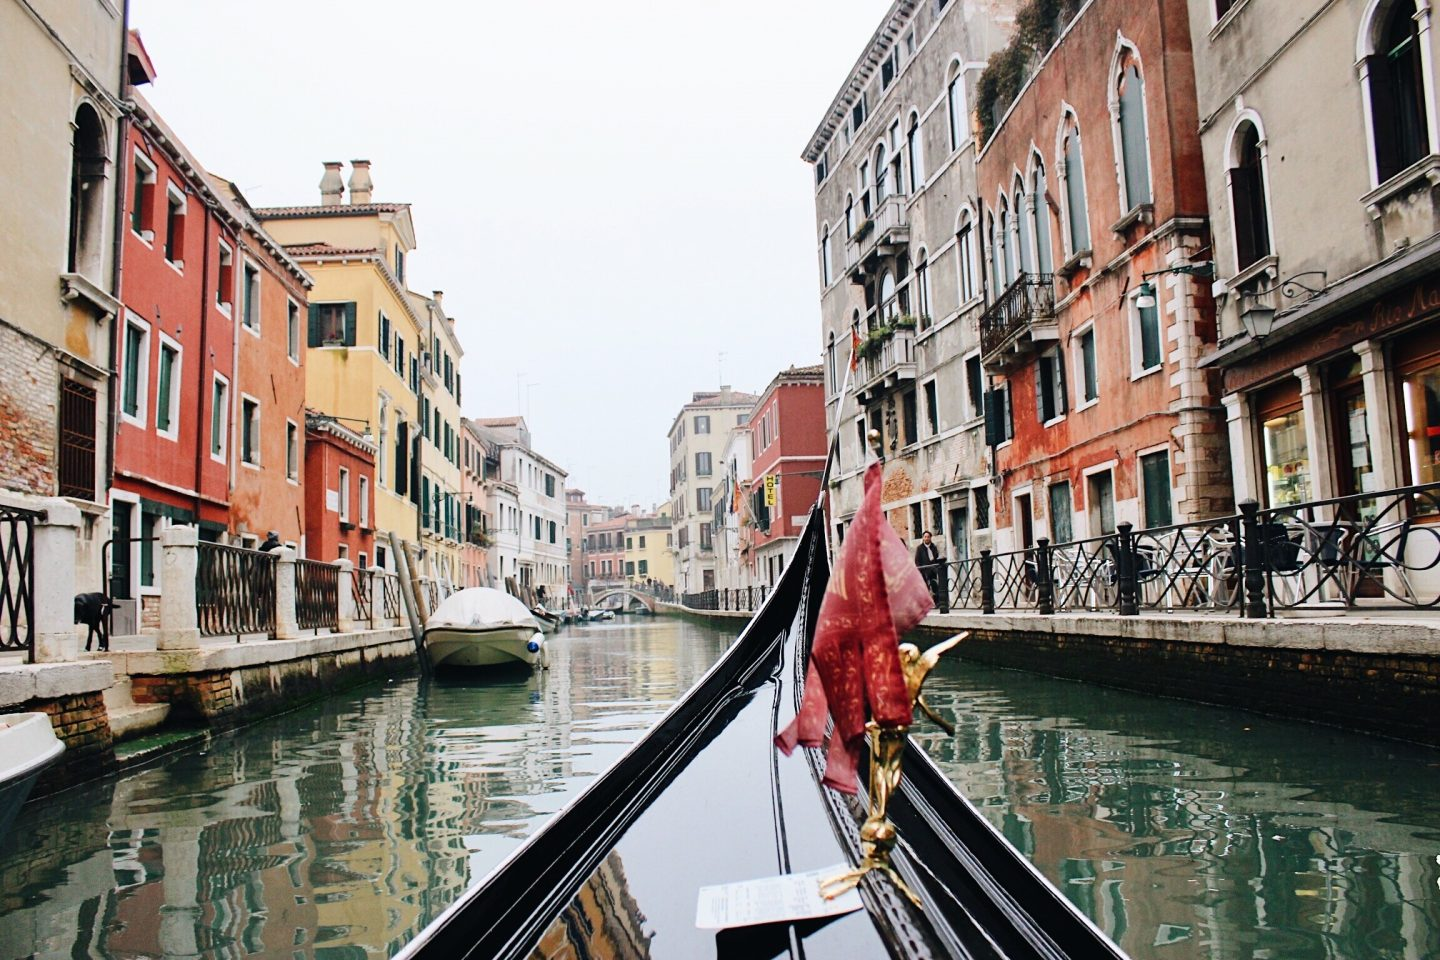 Photo from a gondola in the Venice, Italy canals